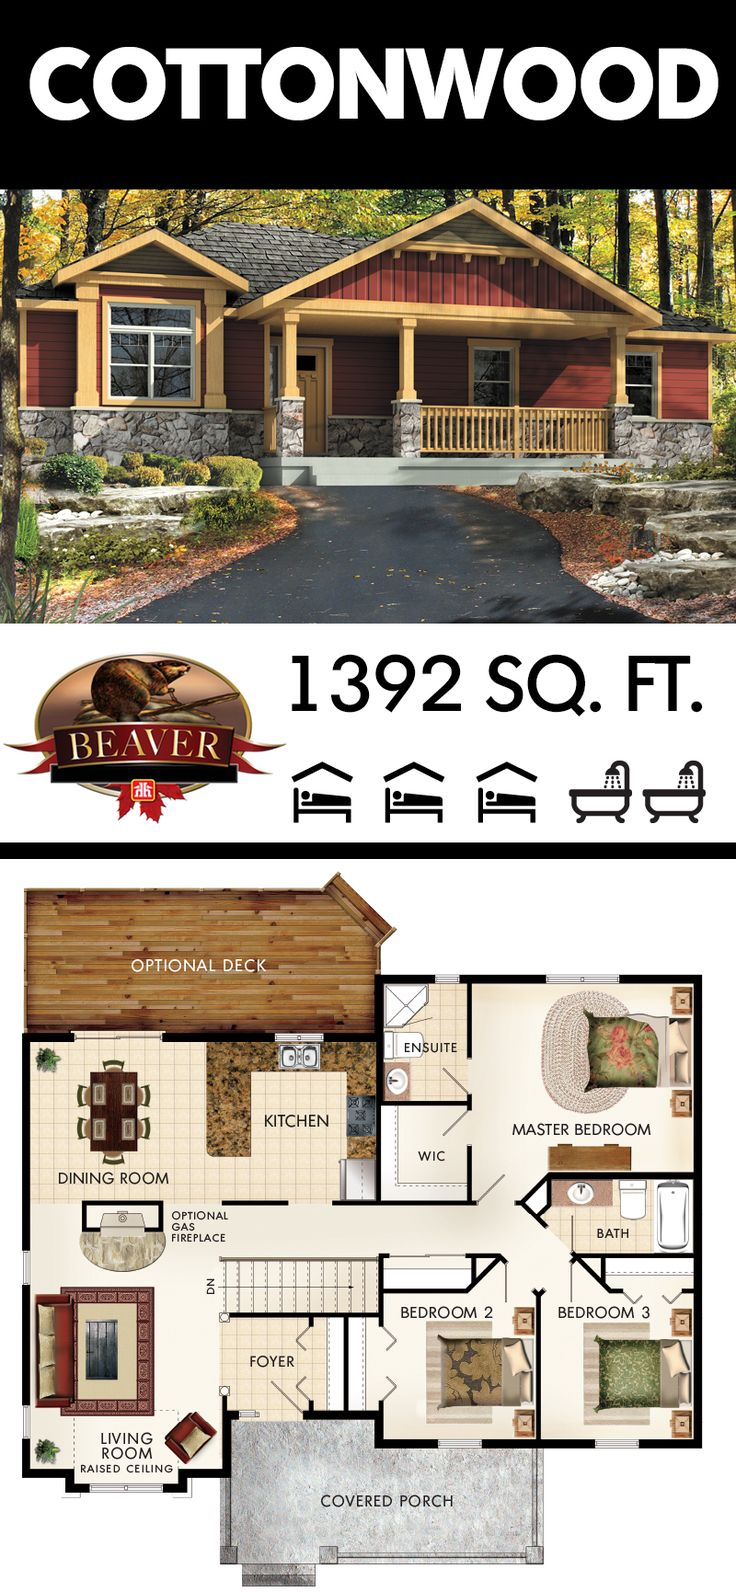 The smooth flow of the Cottonwood's floor plan makes for easy accessibility and movement. Bonus: the craftsman-like exterior provides stunning curb appeal. #BeaverHomesAndCottages